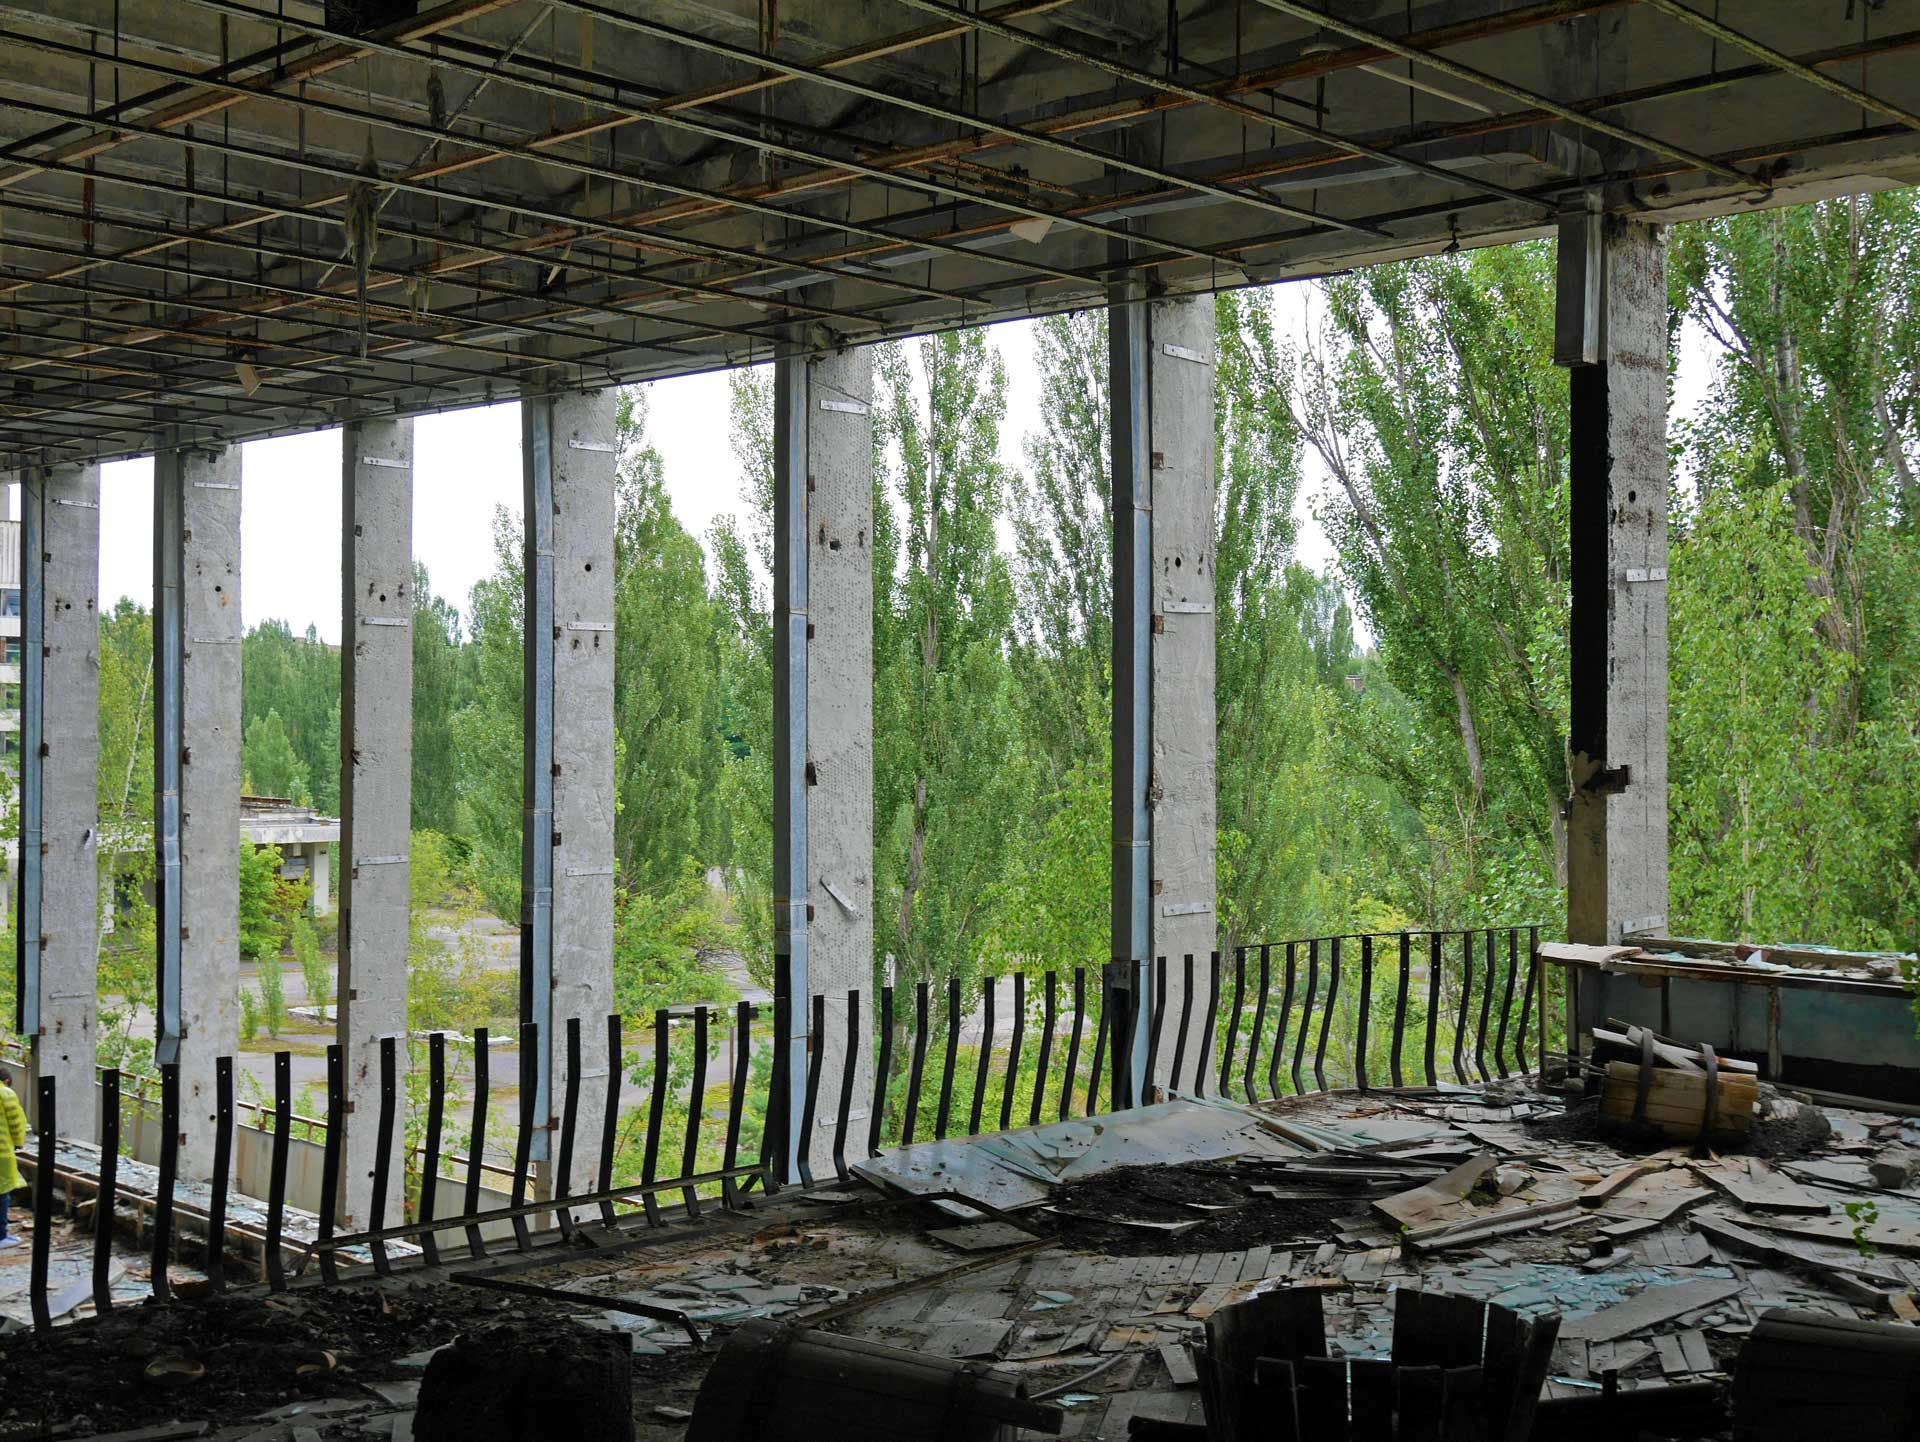 Palace-of-Culture-Pripyat-Energetic-5